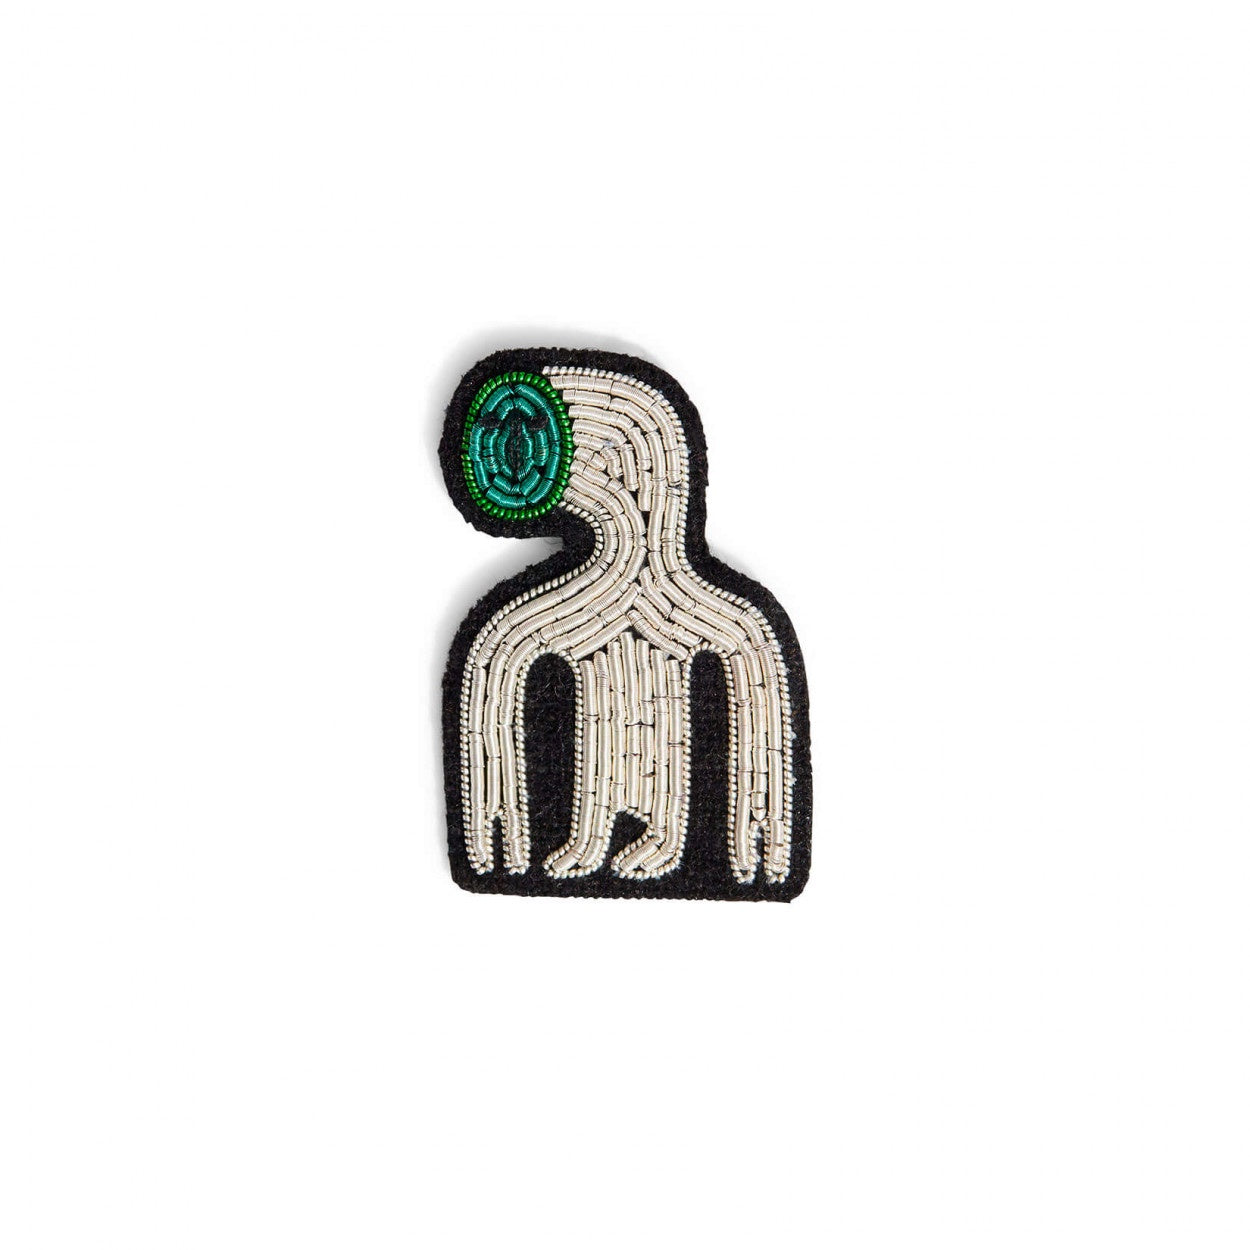 Macon & Lesquoy Hand Embroidered Pin Green Extraterrestrial